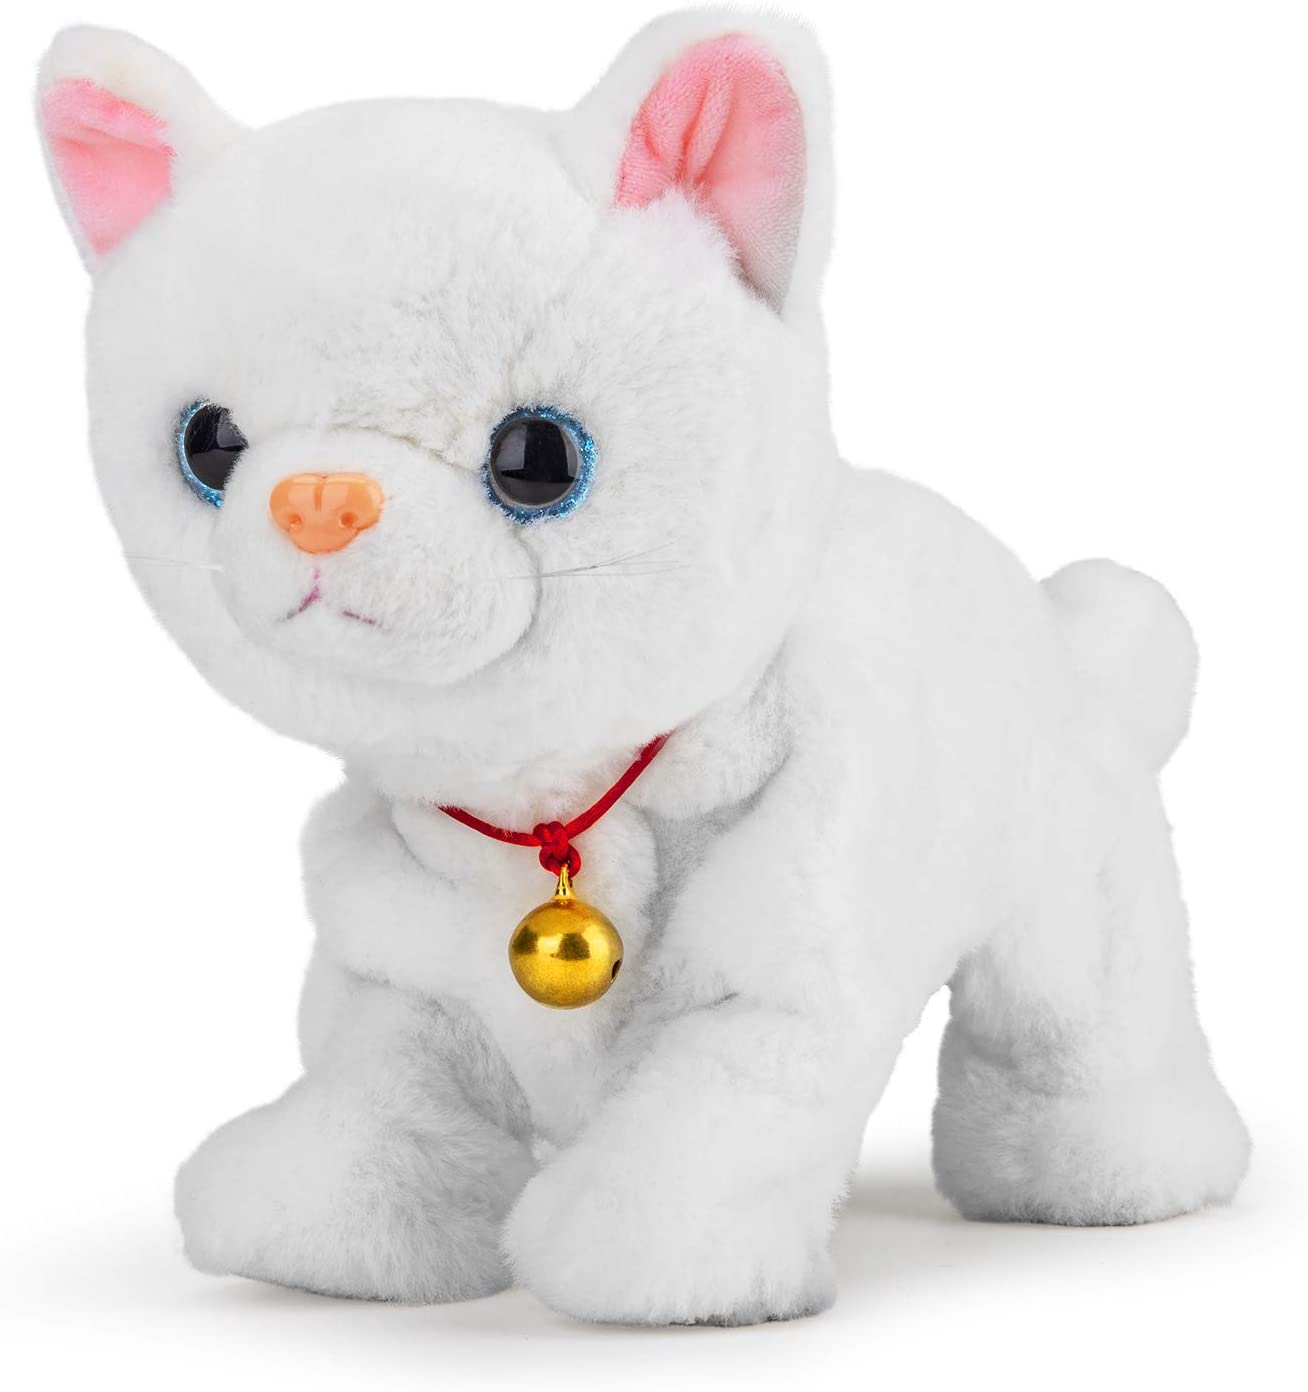 Interactive Electronic Plush Cat Toy - Control Super sale Update Courier shipping free Meow Touch